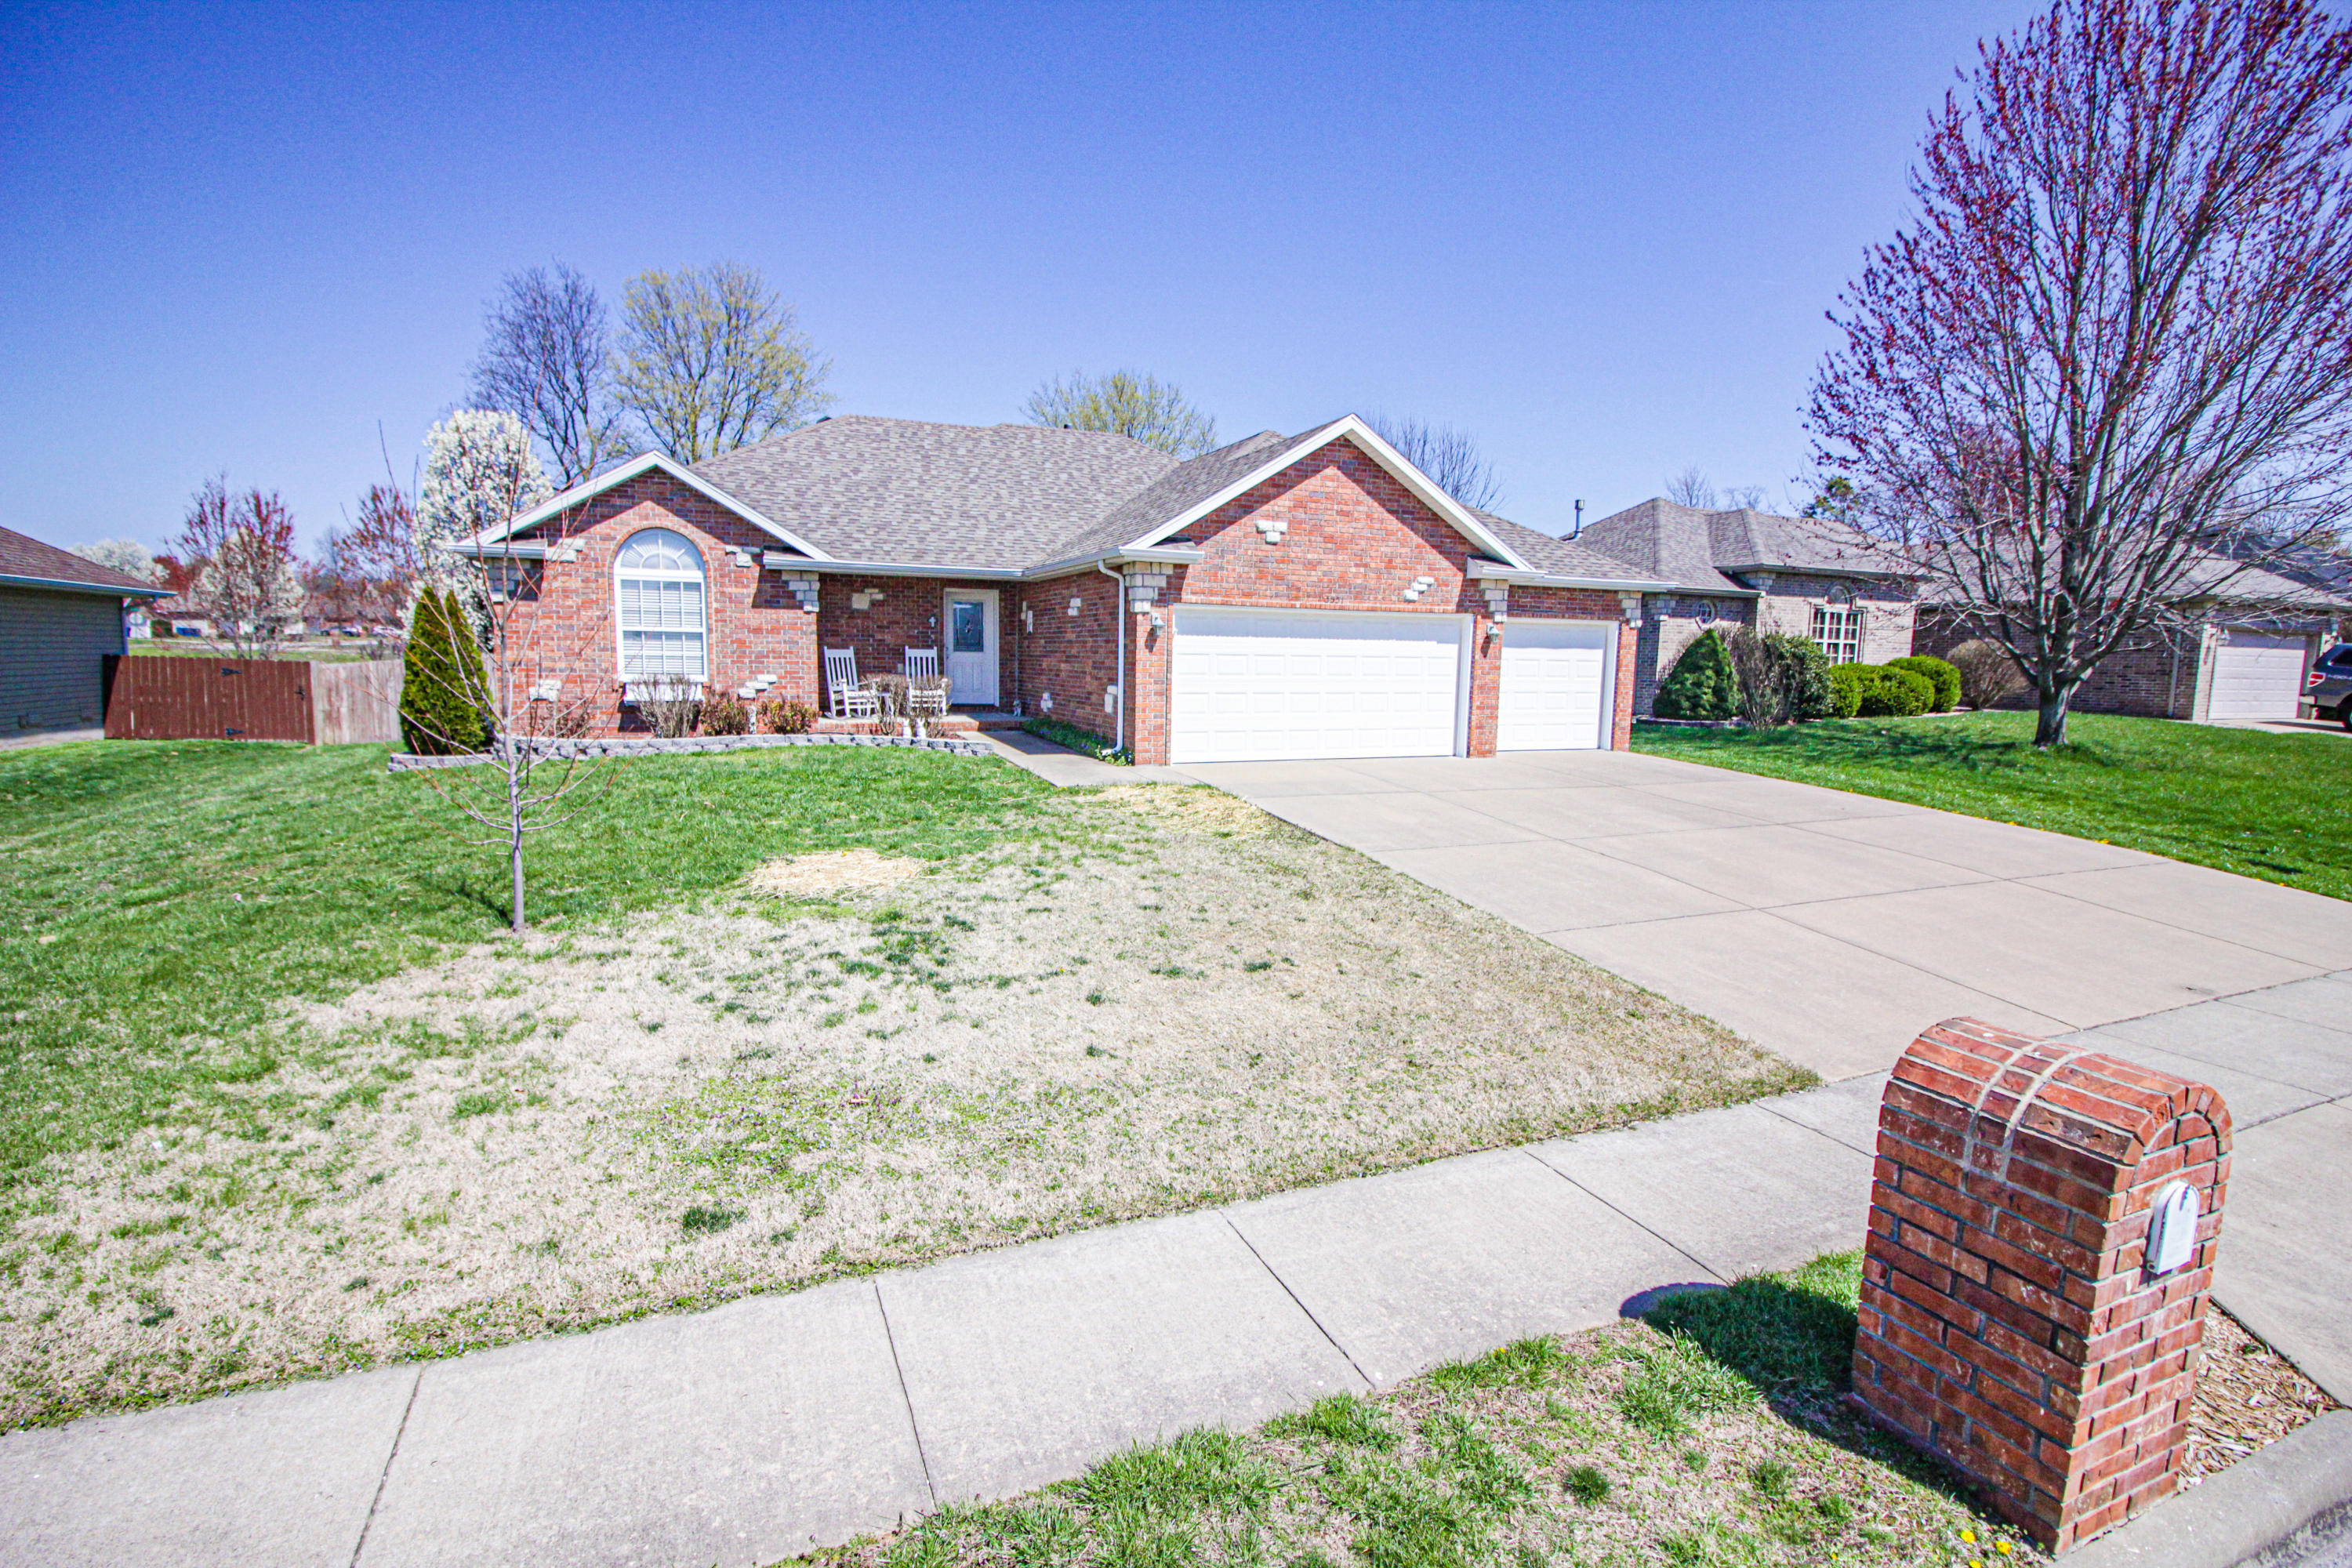 3551 West Cole Street Battlefield, MO 65619